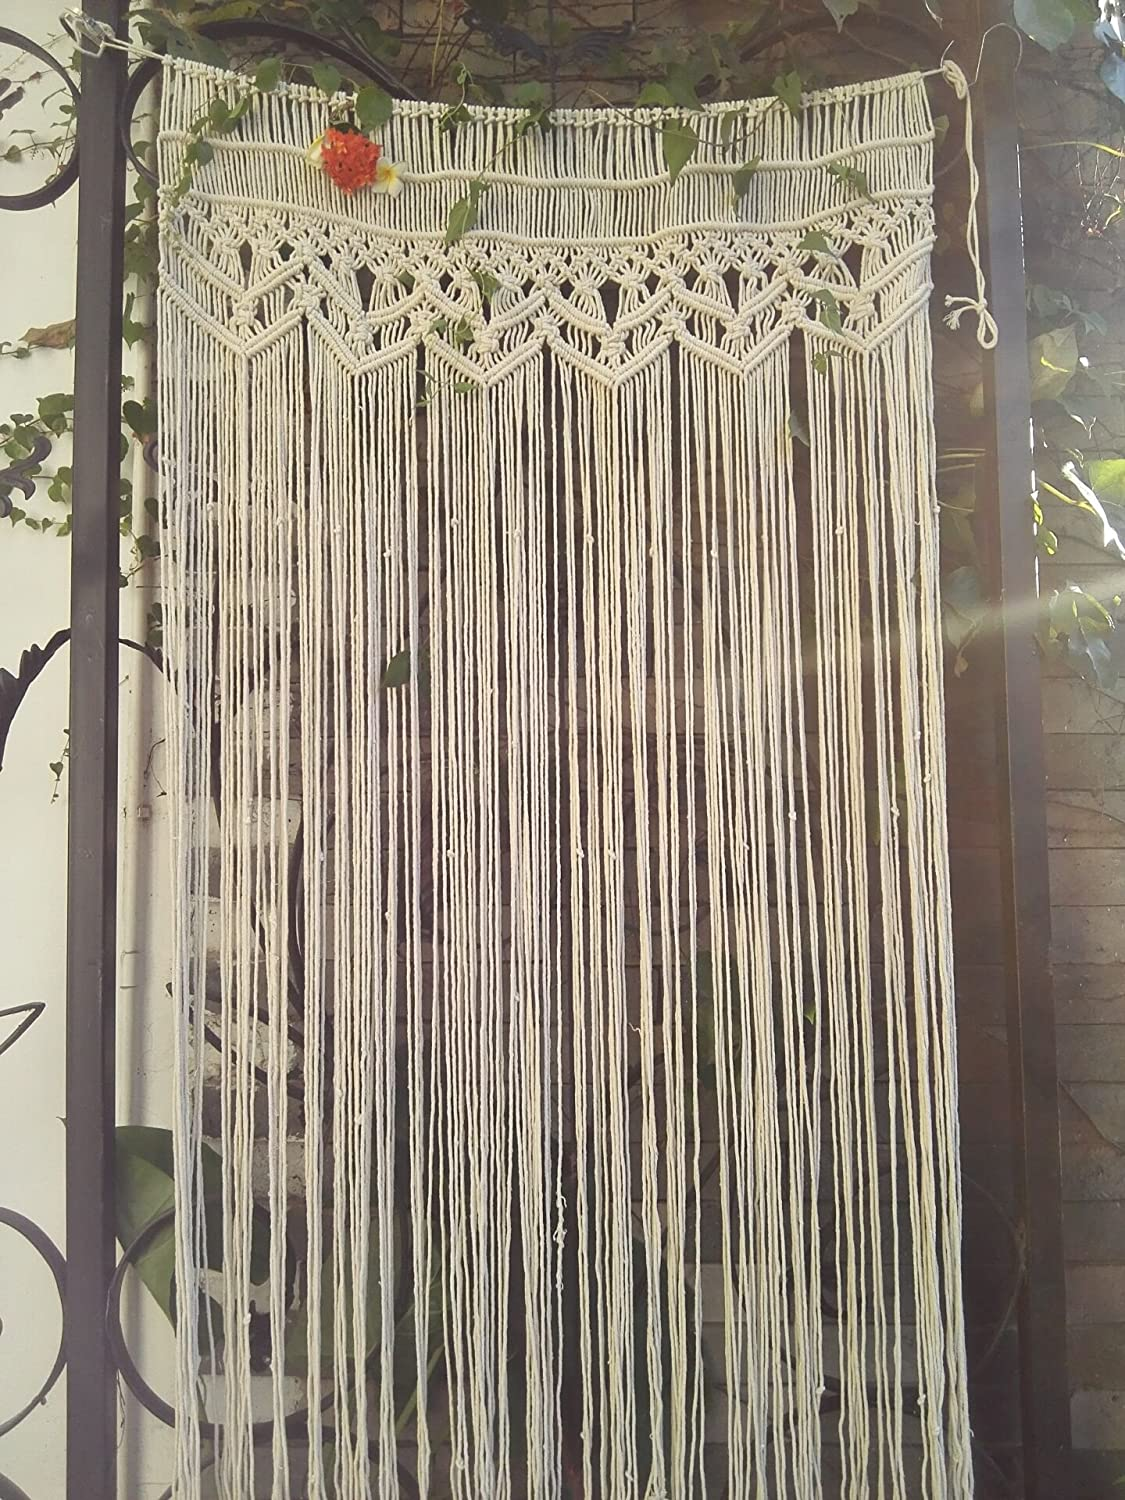 Buy RISEON Macrame Cotton Wall Hanging Tapestry (33 5x70